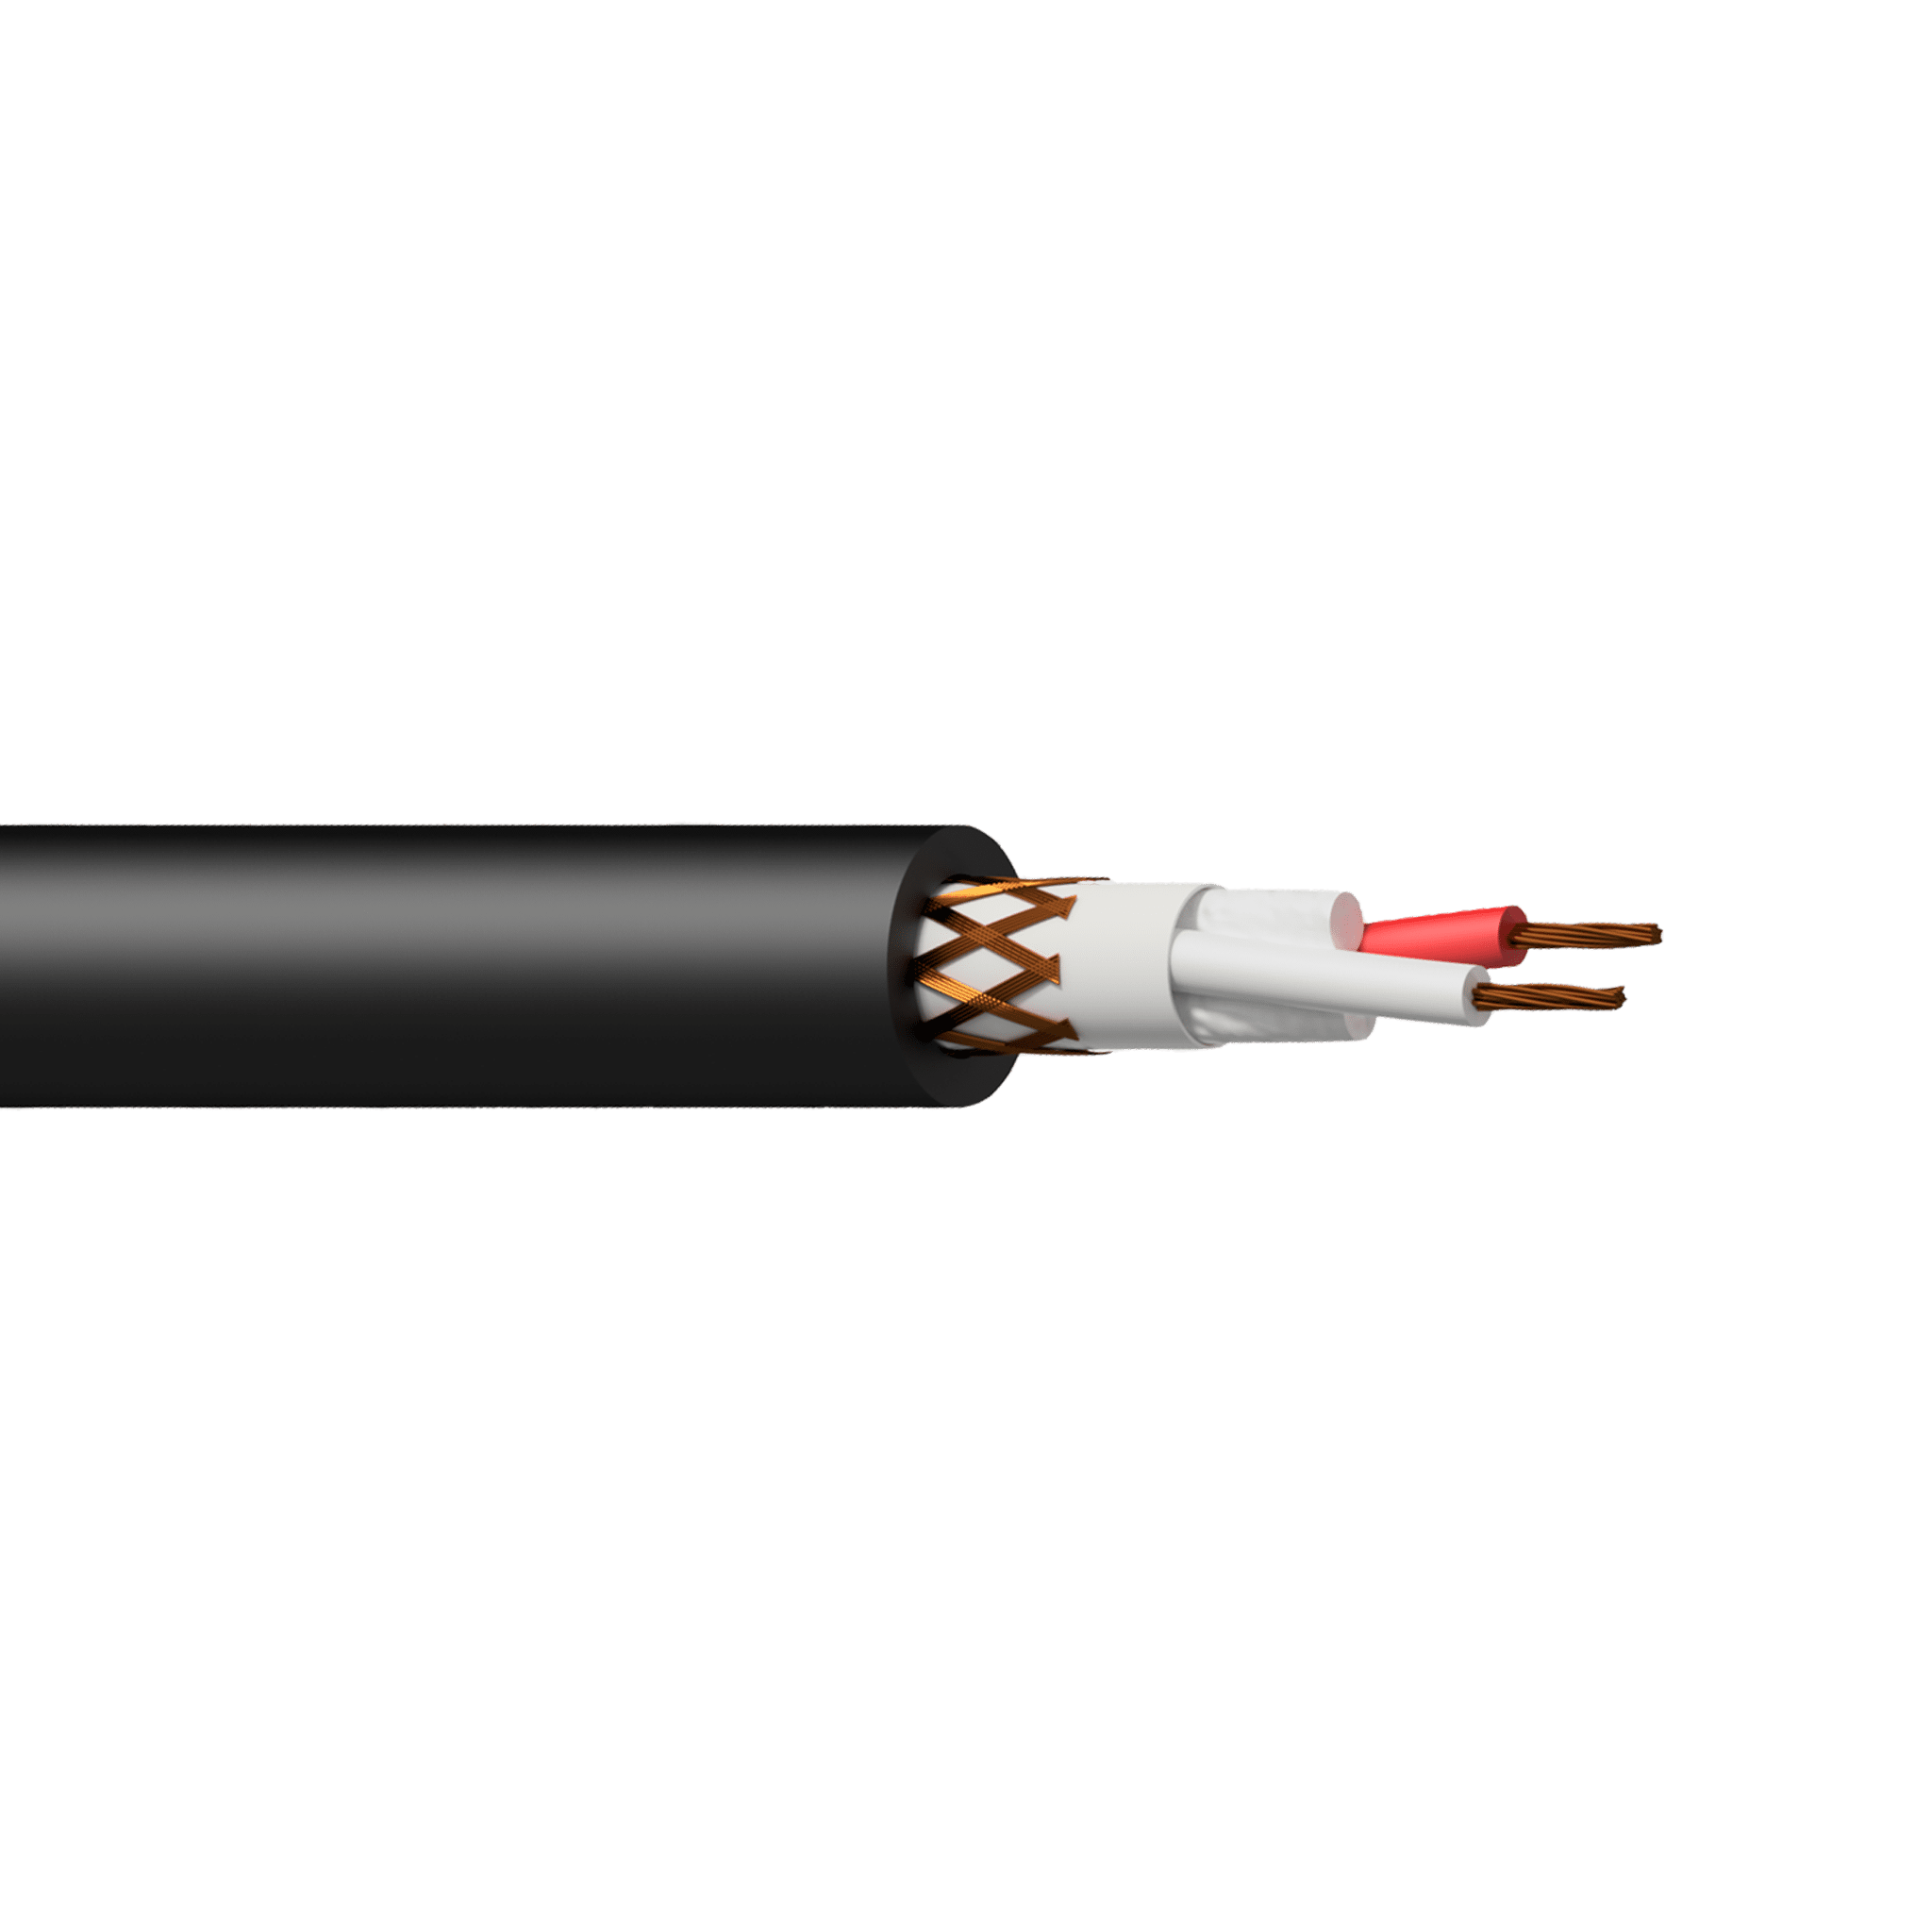 PMH224 - Balanced microphone cable - flex 2 x 0.22 mm² - 24 AWG - HighFlex™